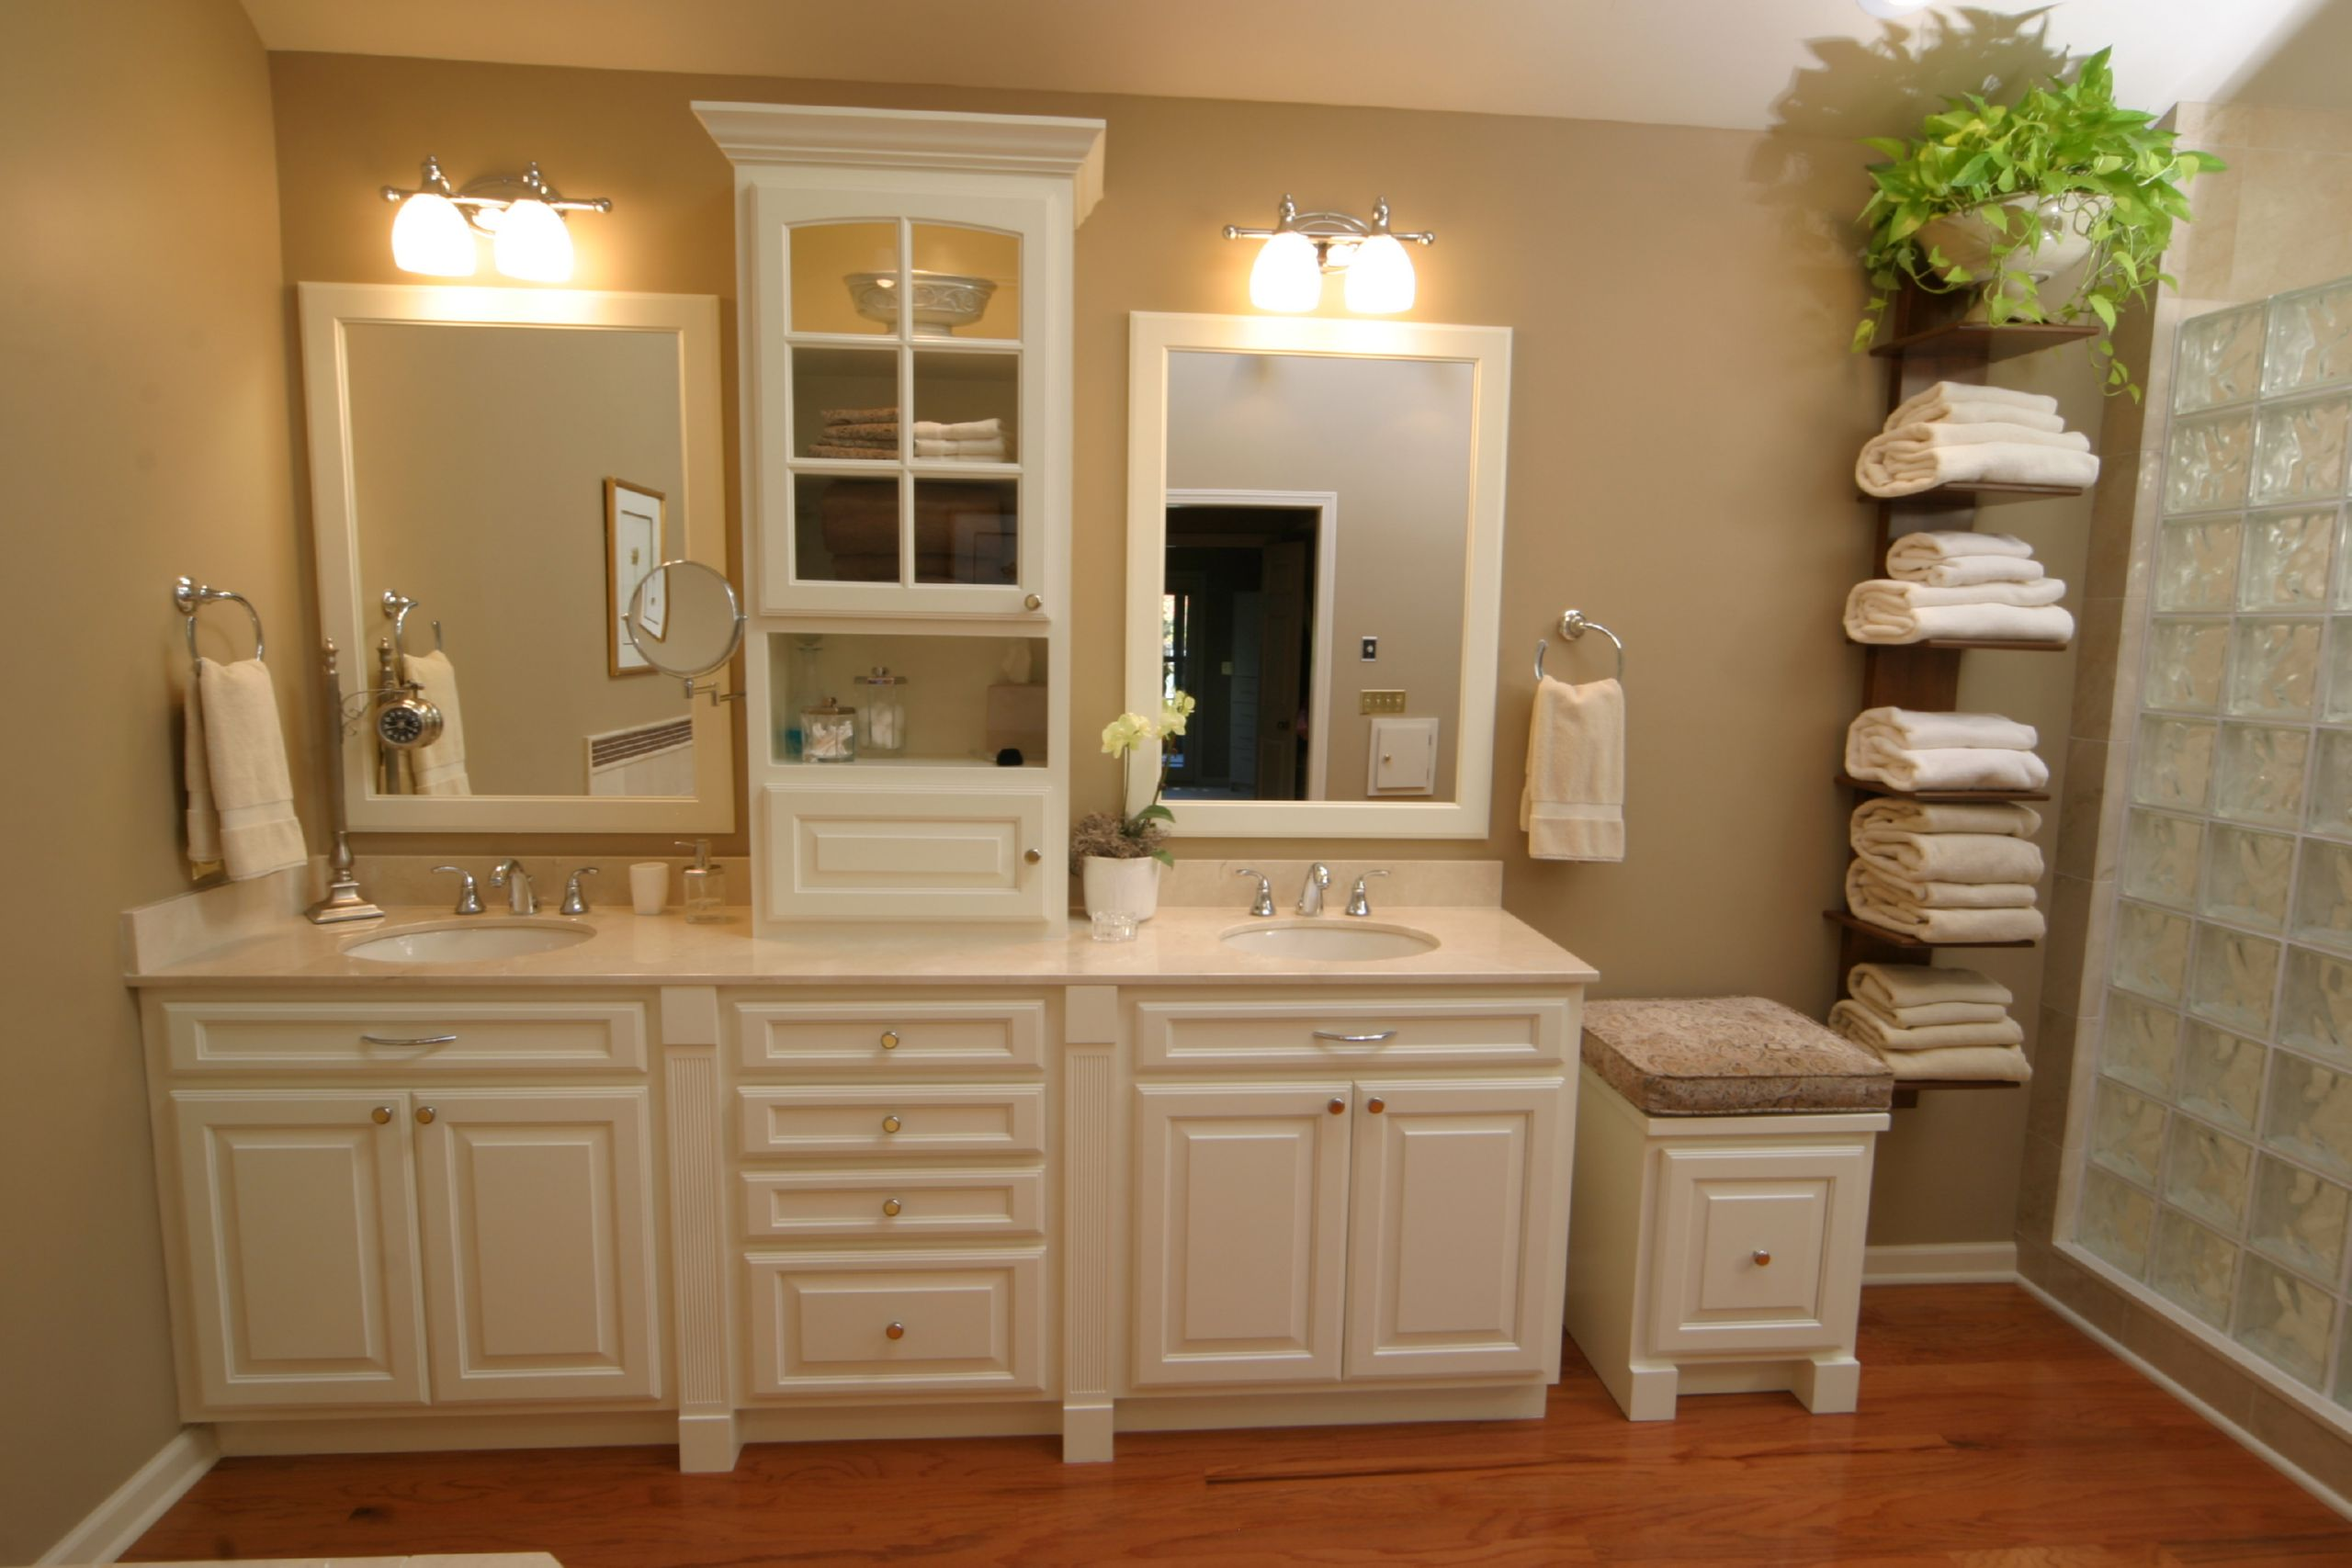 Bathroom remodeling bath remodel contractor for Bathroom counter designs